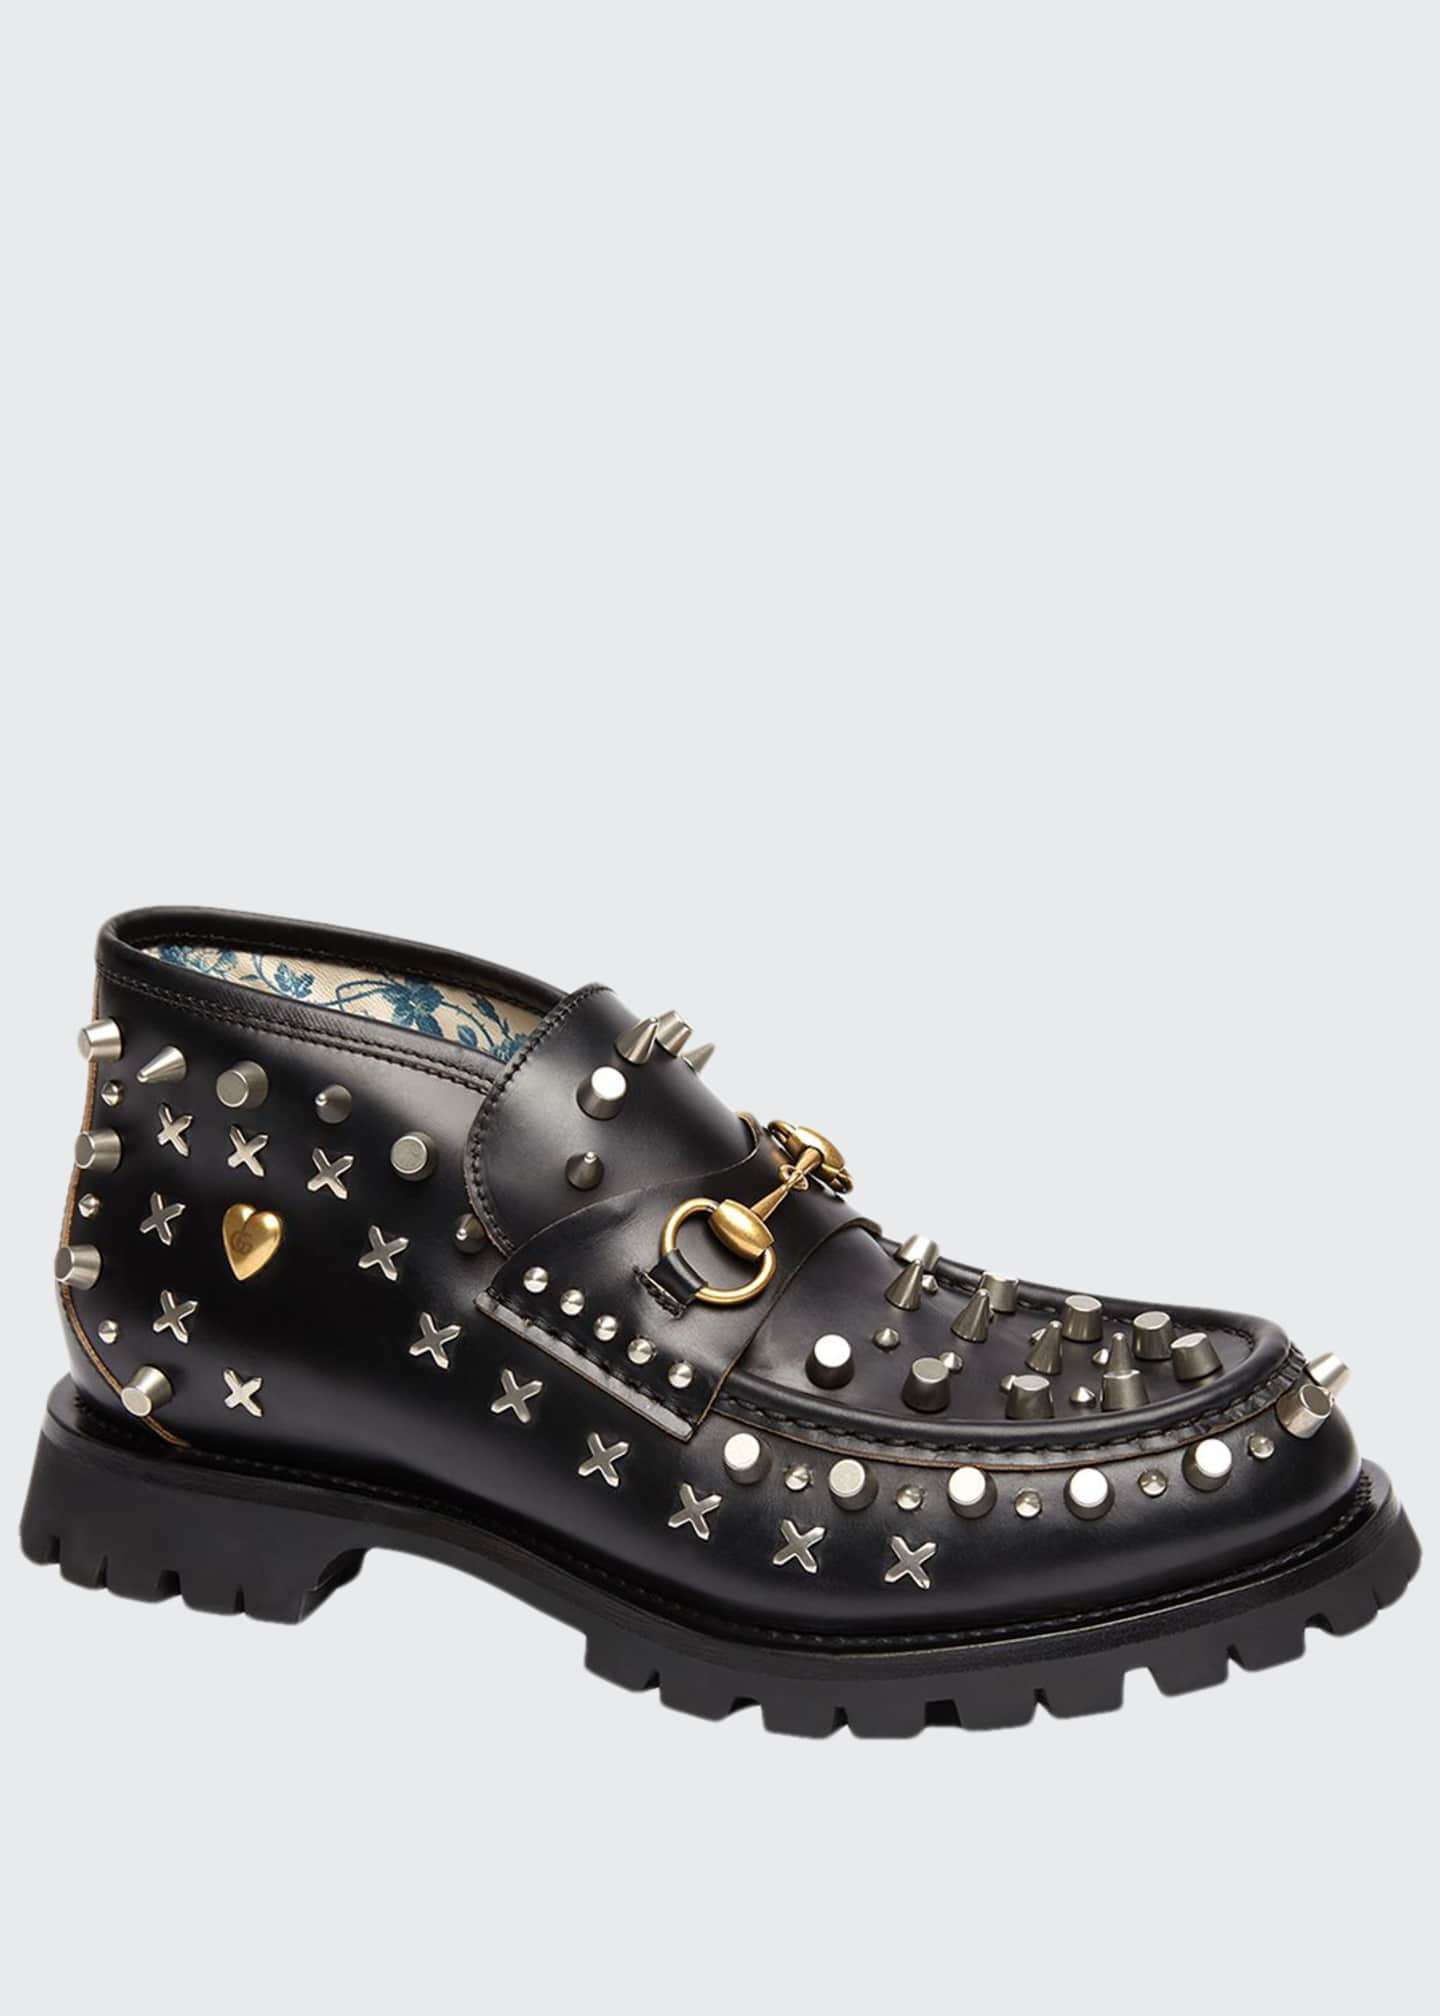 Gucci Men's Studded Leather Ankle Boots